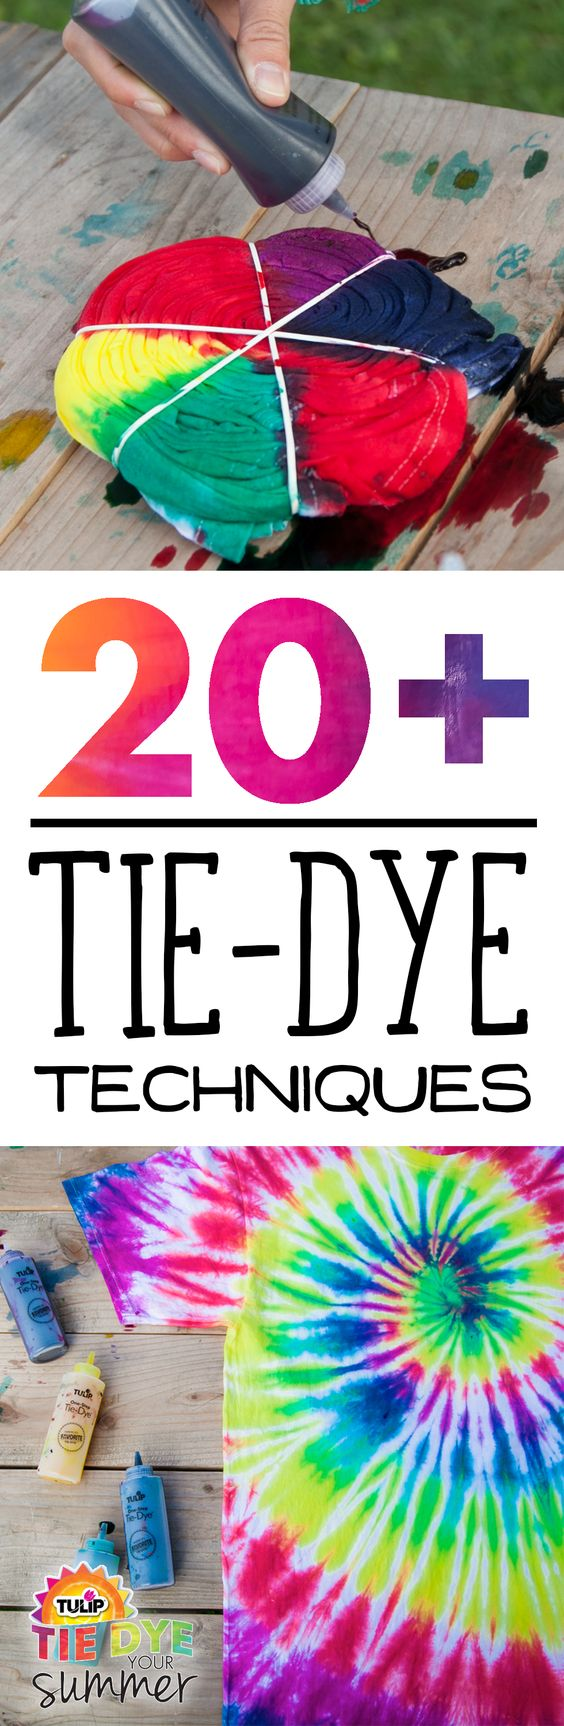 Tie Dye Your Summer is loaded with tons of cool tie dye projects, videos, and inspirations. Check it out for all your tie dye pattern and technique ideas this summer. #tiedyeyoursummer